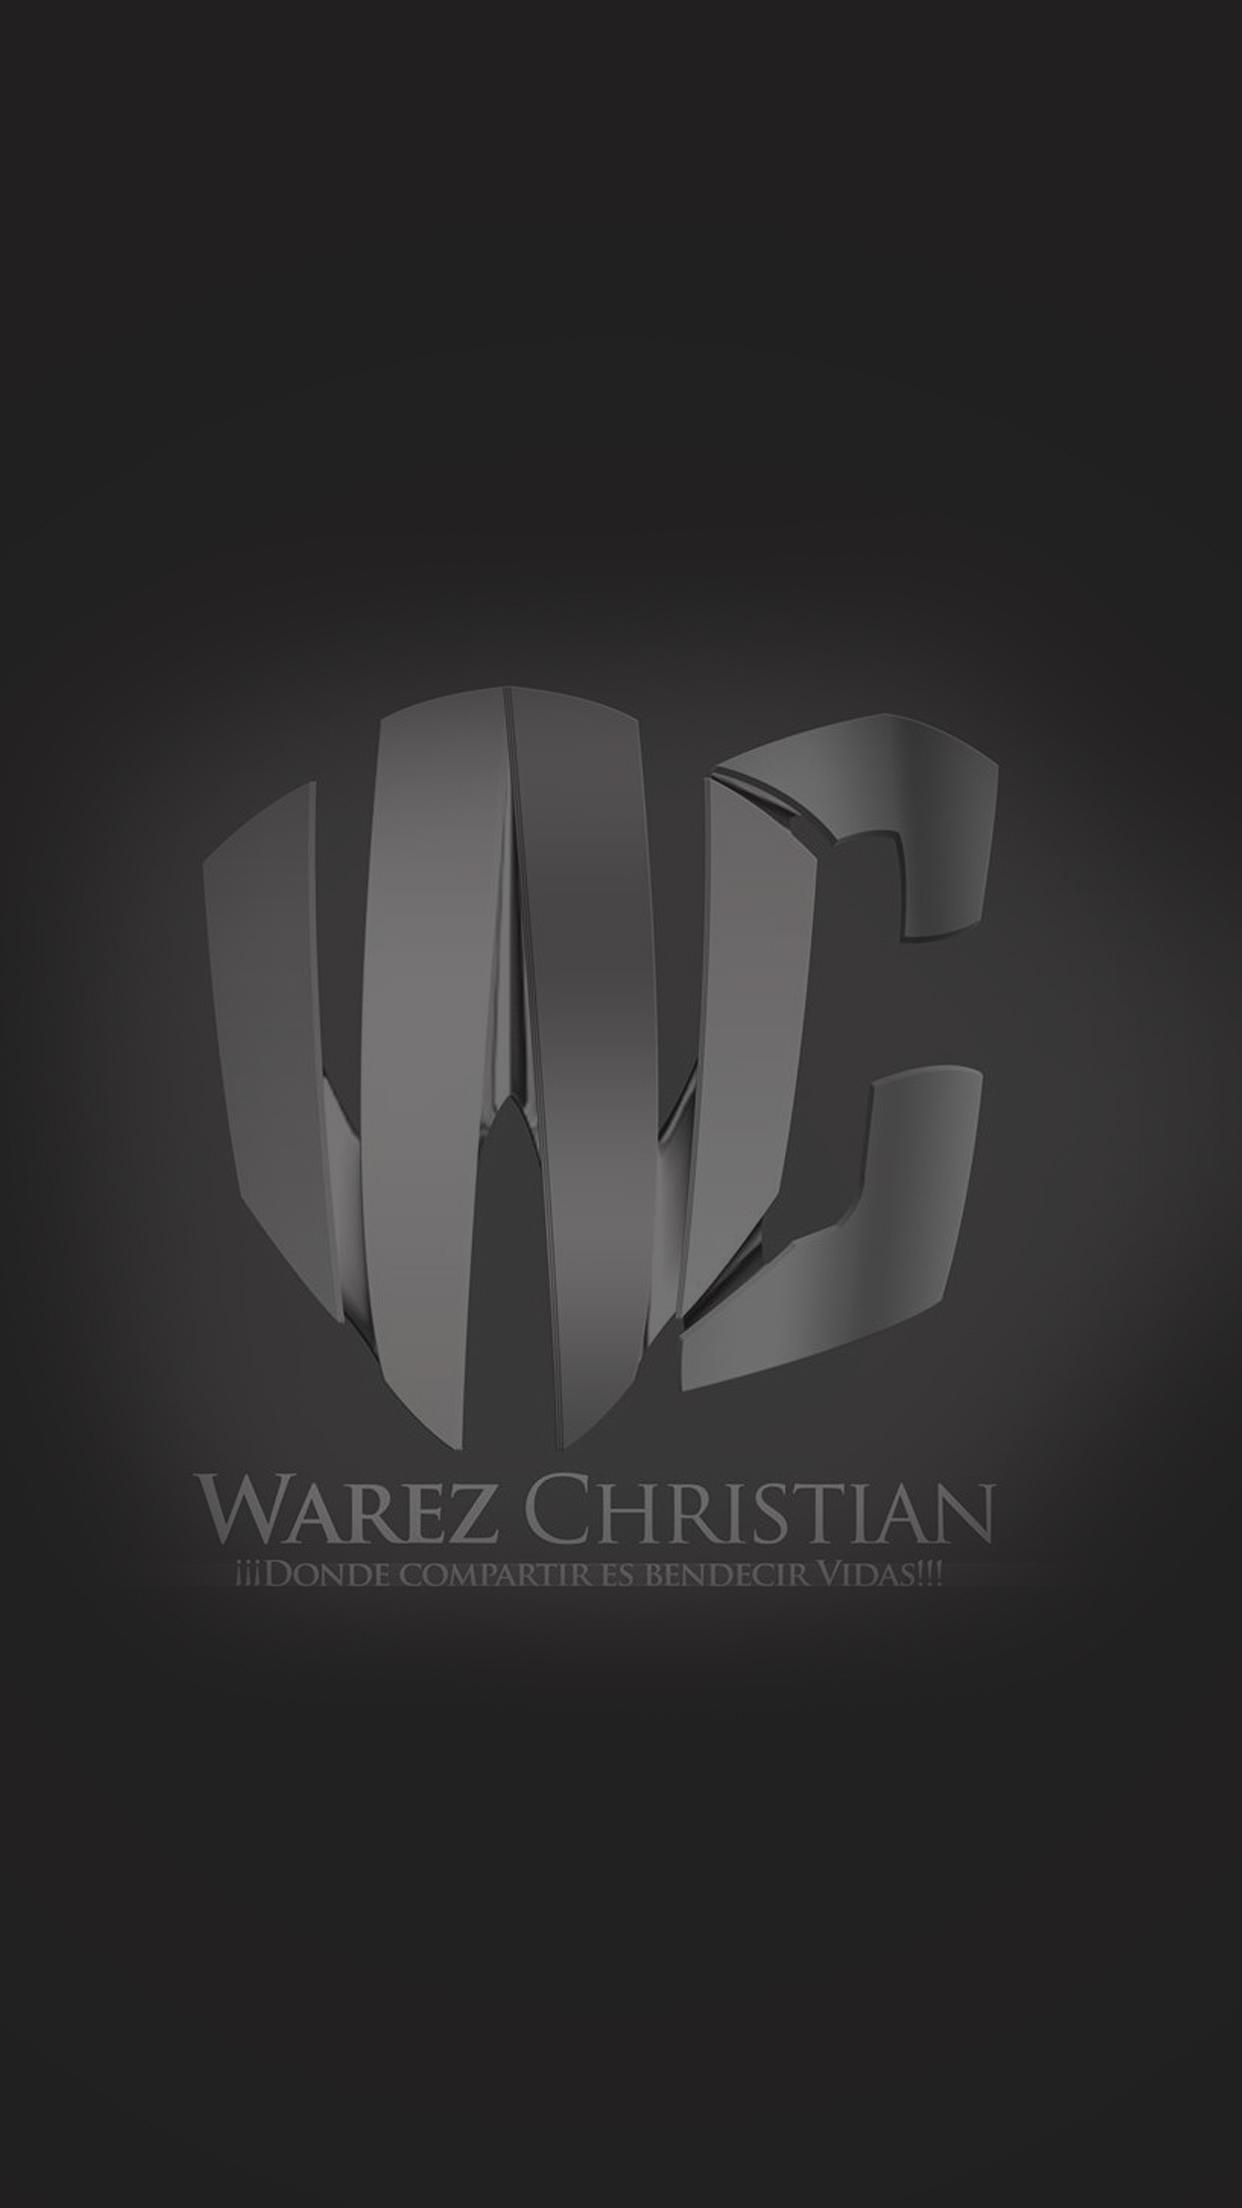 Warez Christian for Android - APK Download